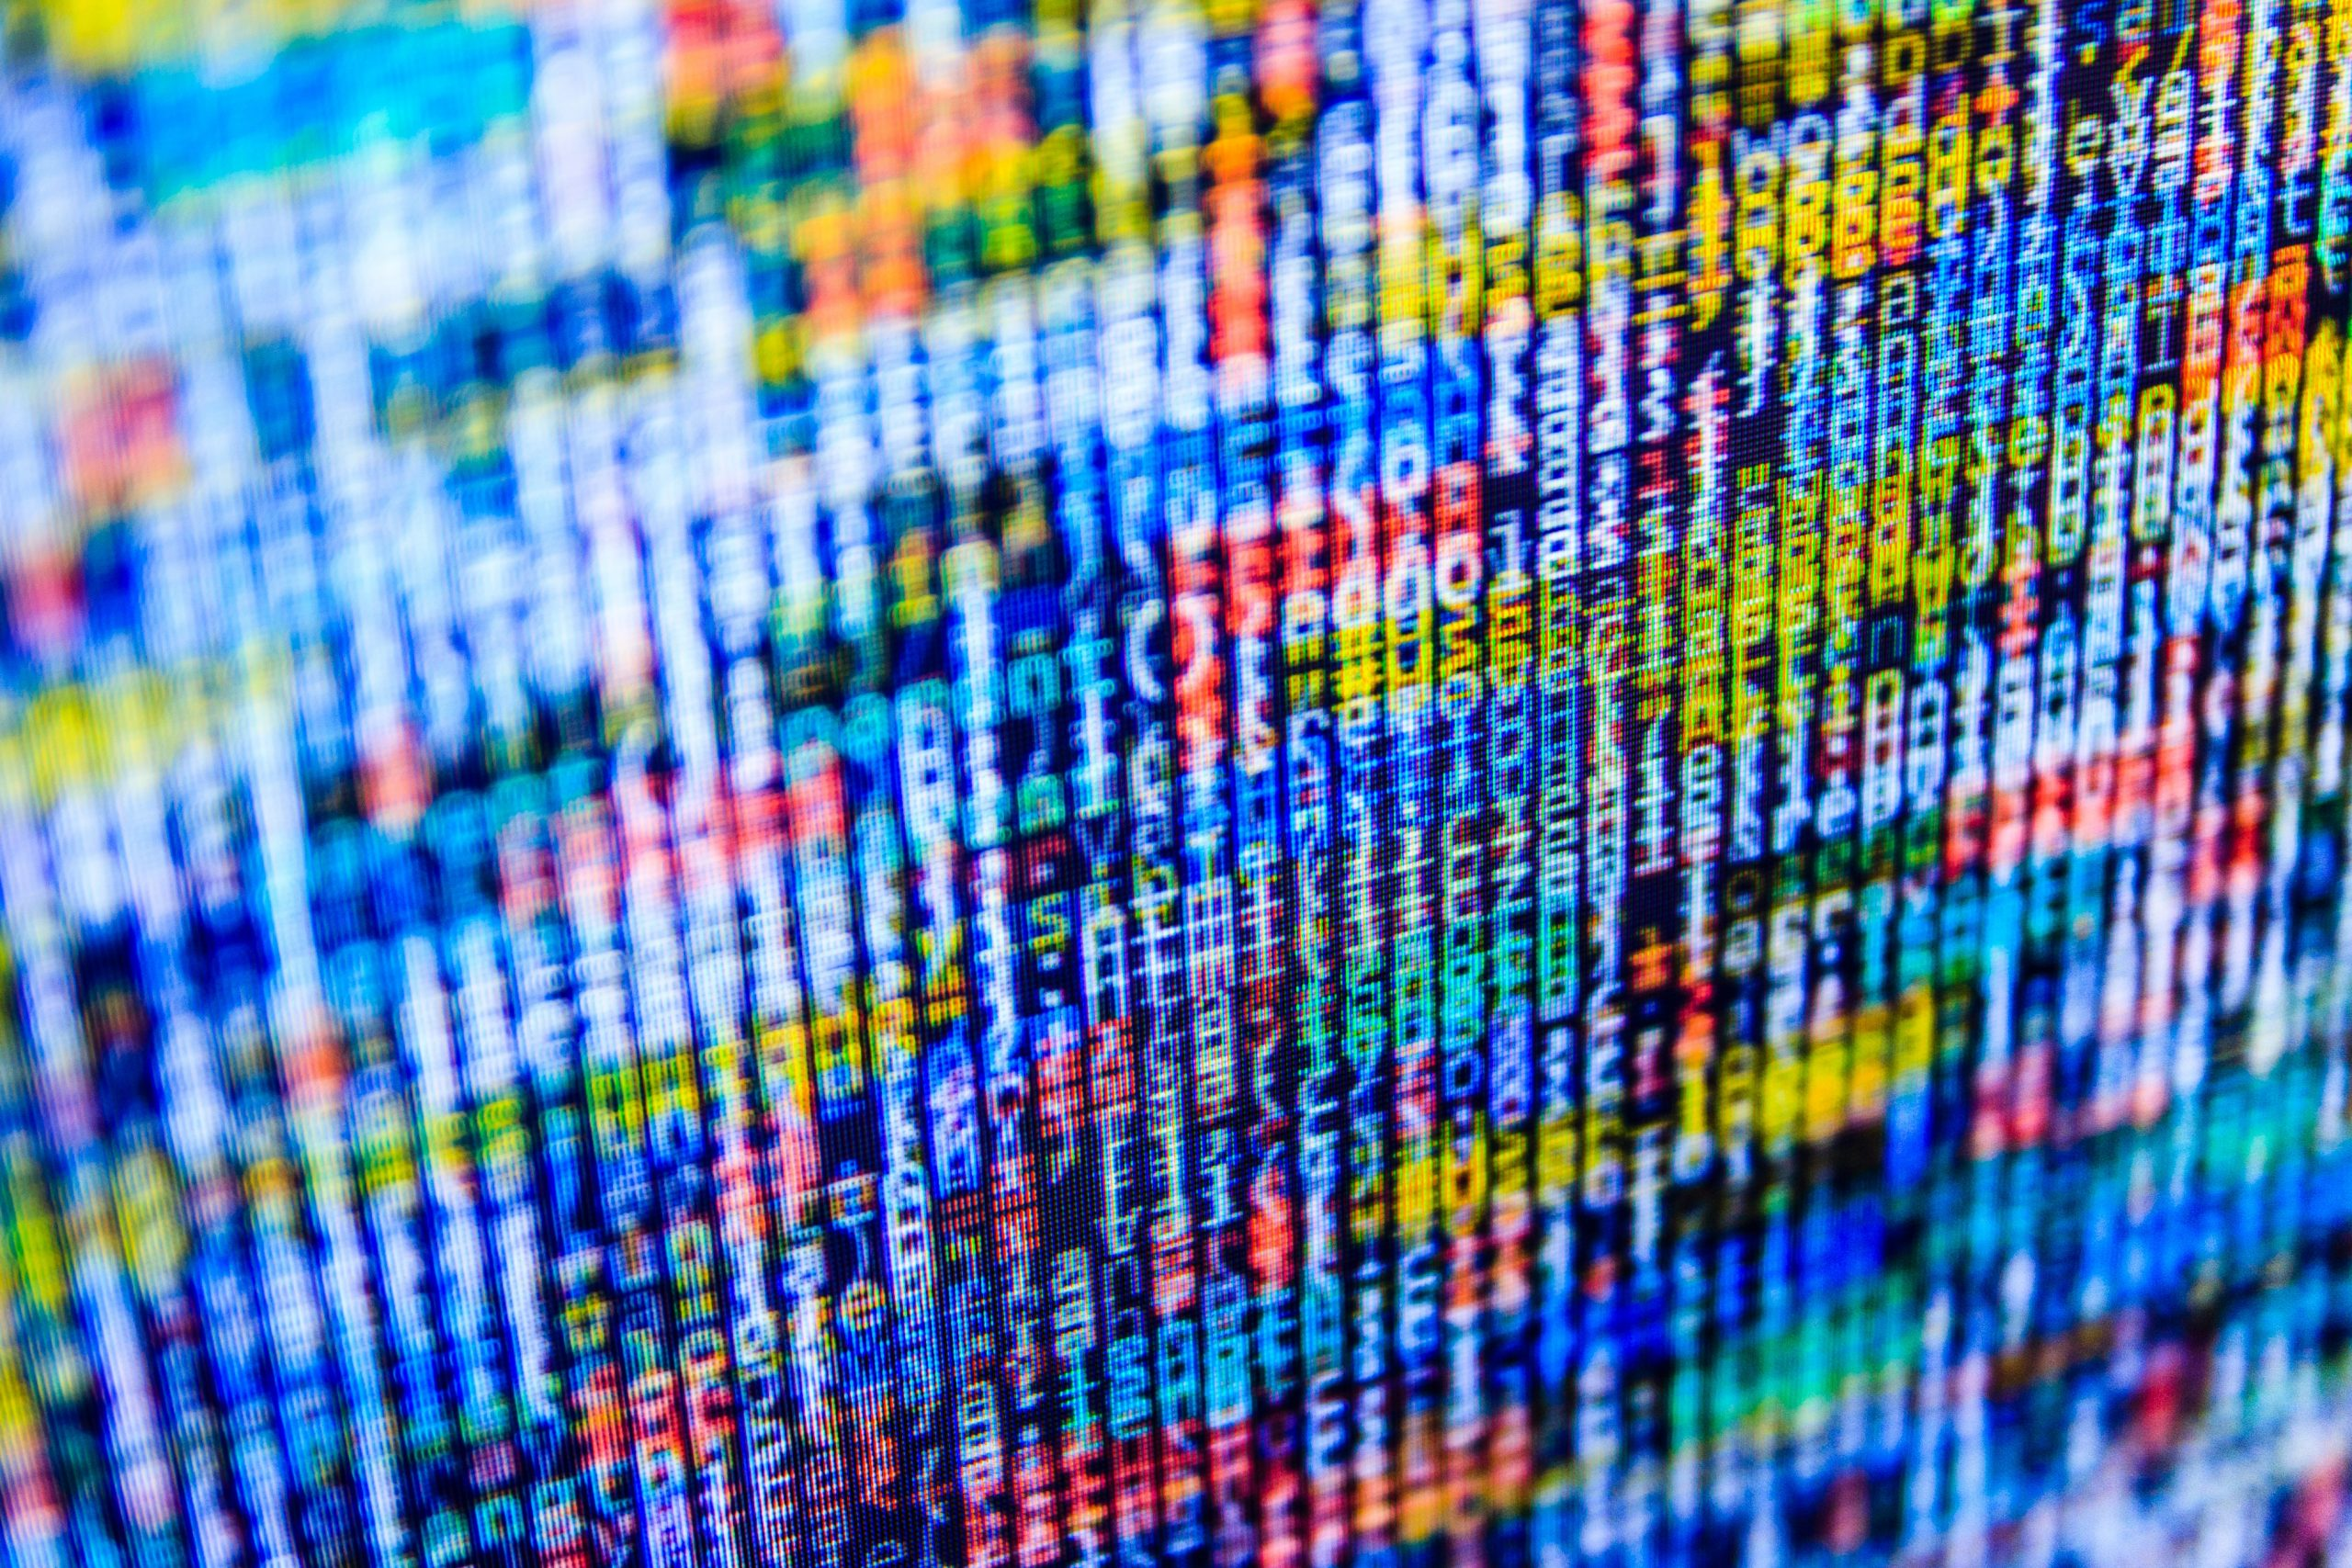 The moral side of cloud-based data science